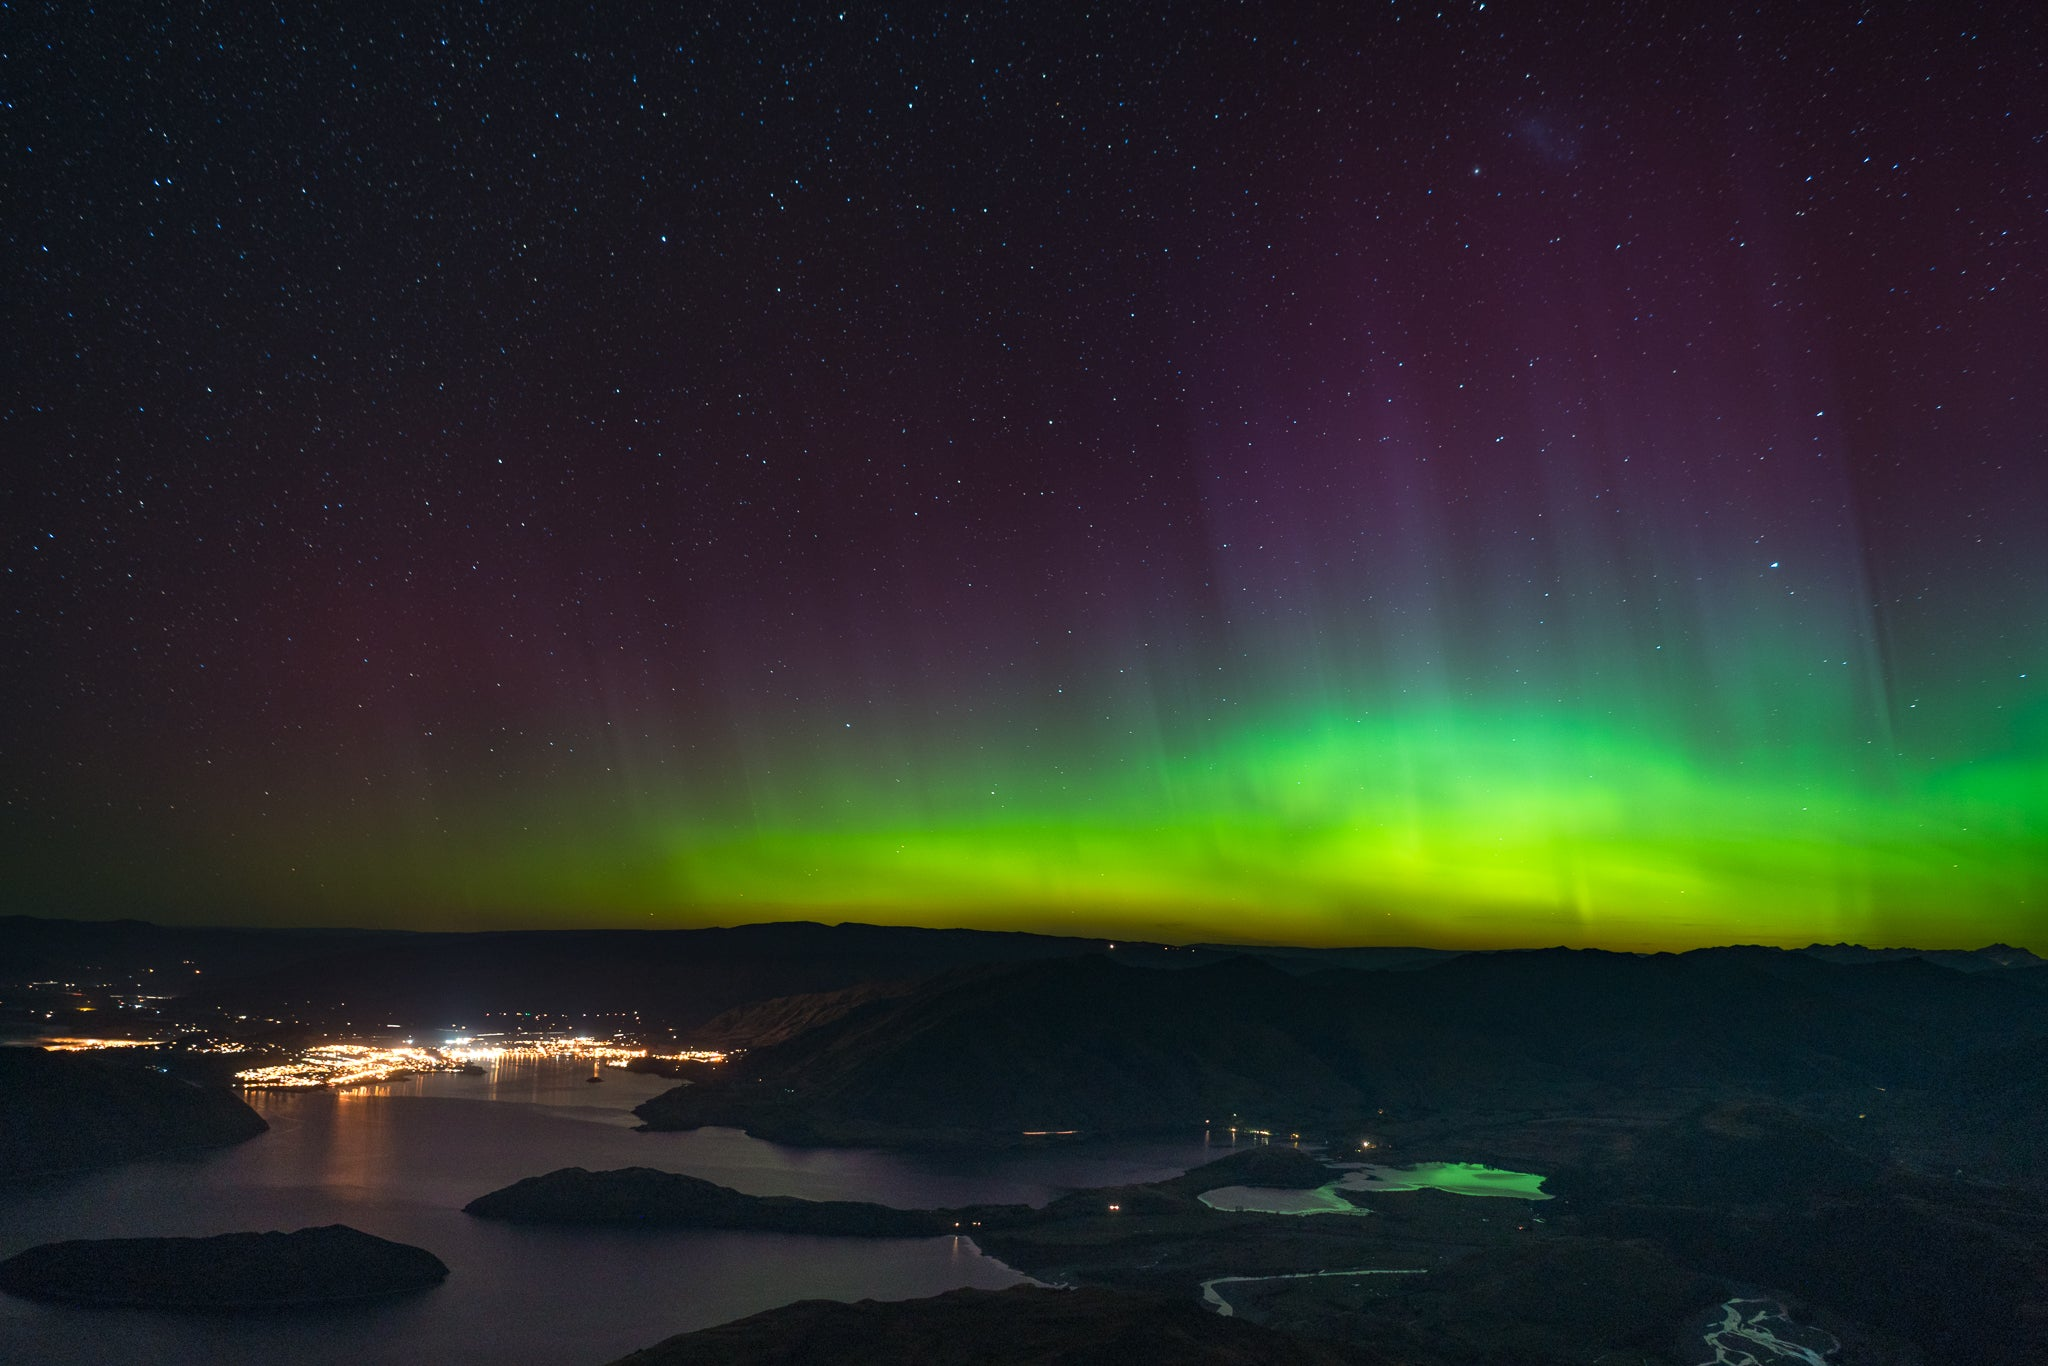 Green Southern Lights over New Zealand